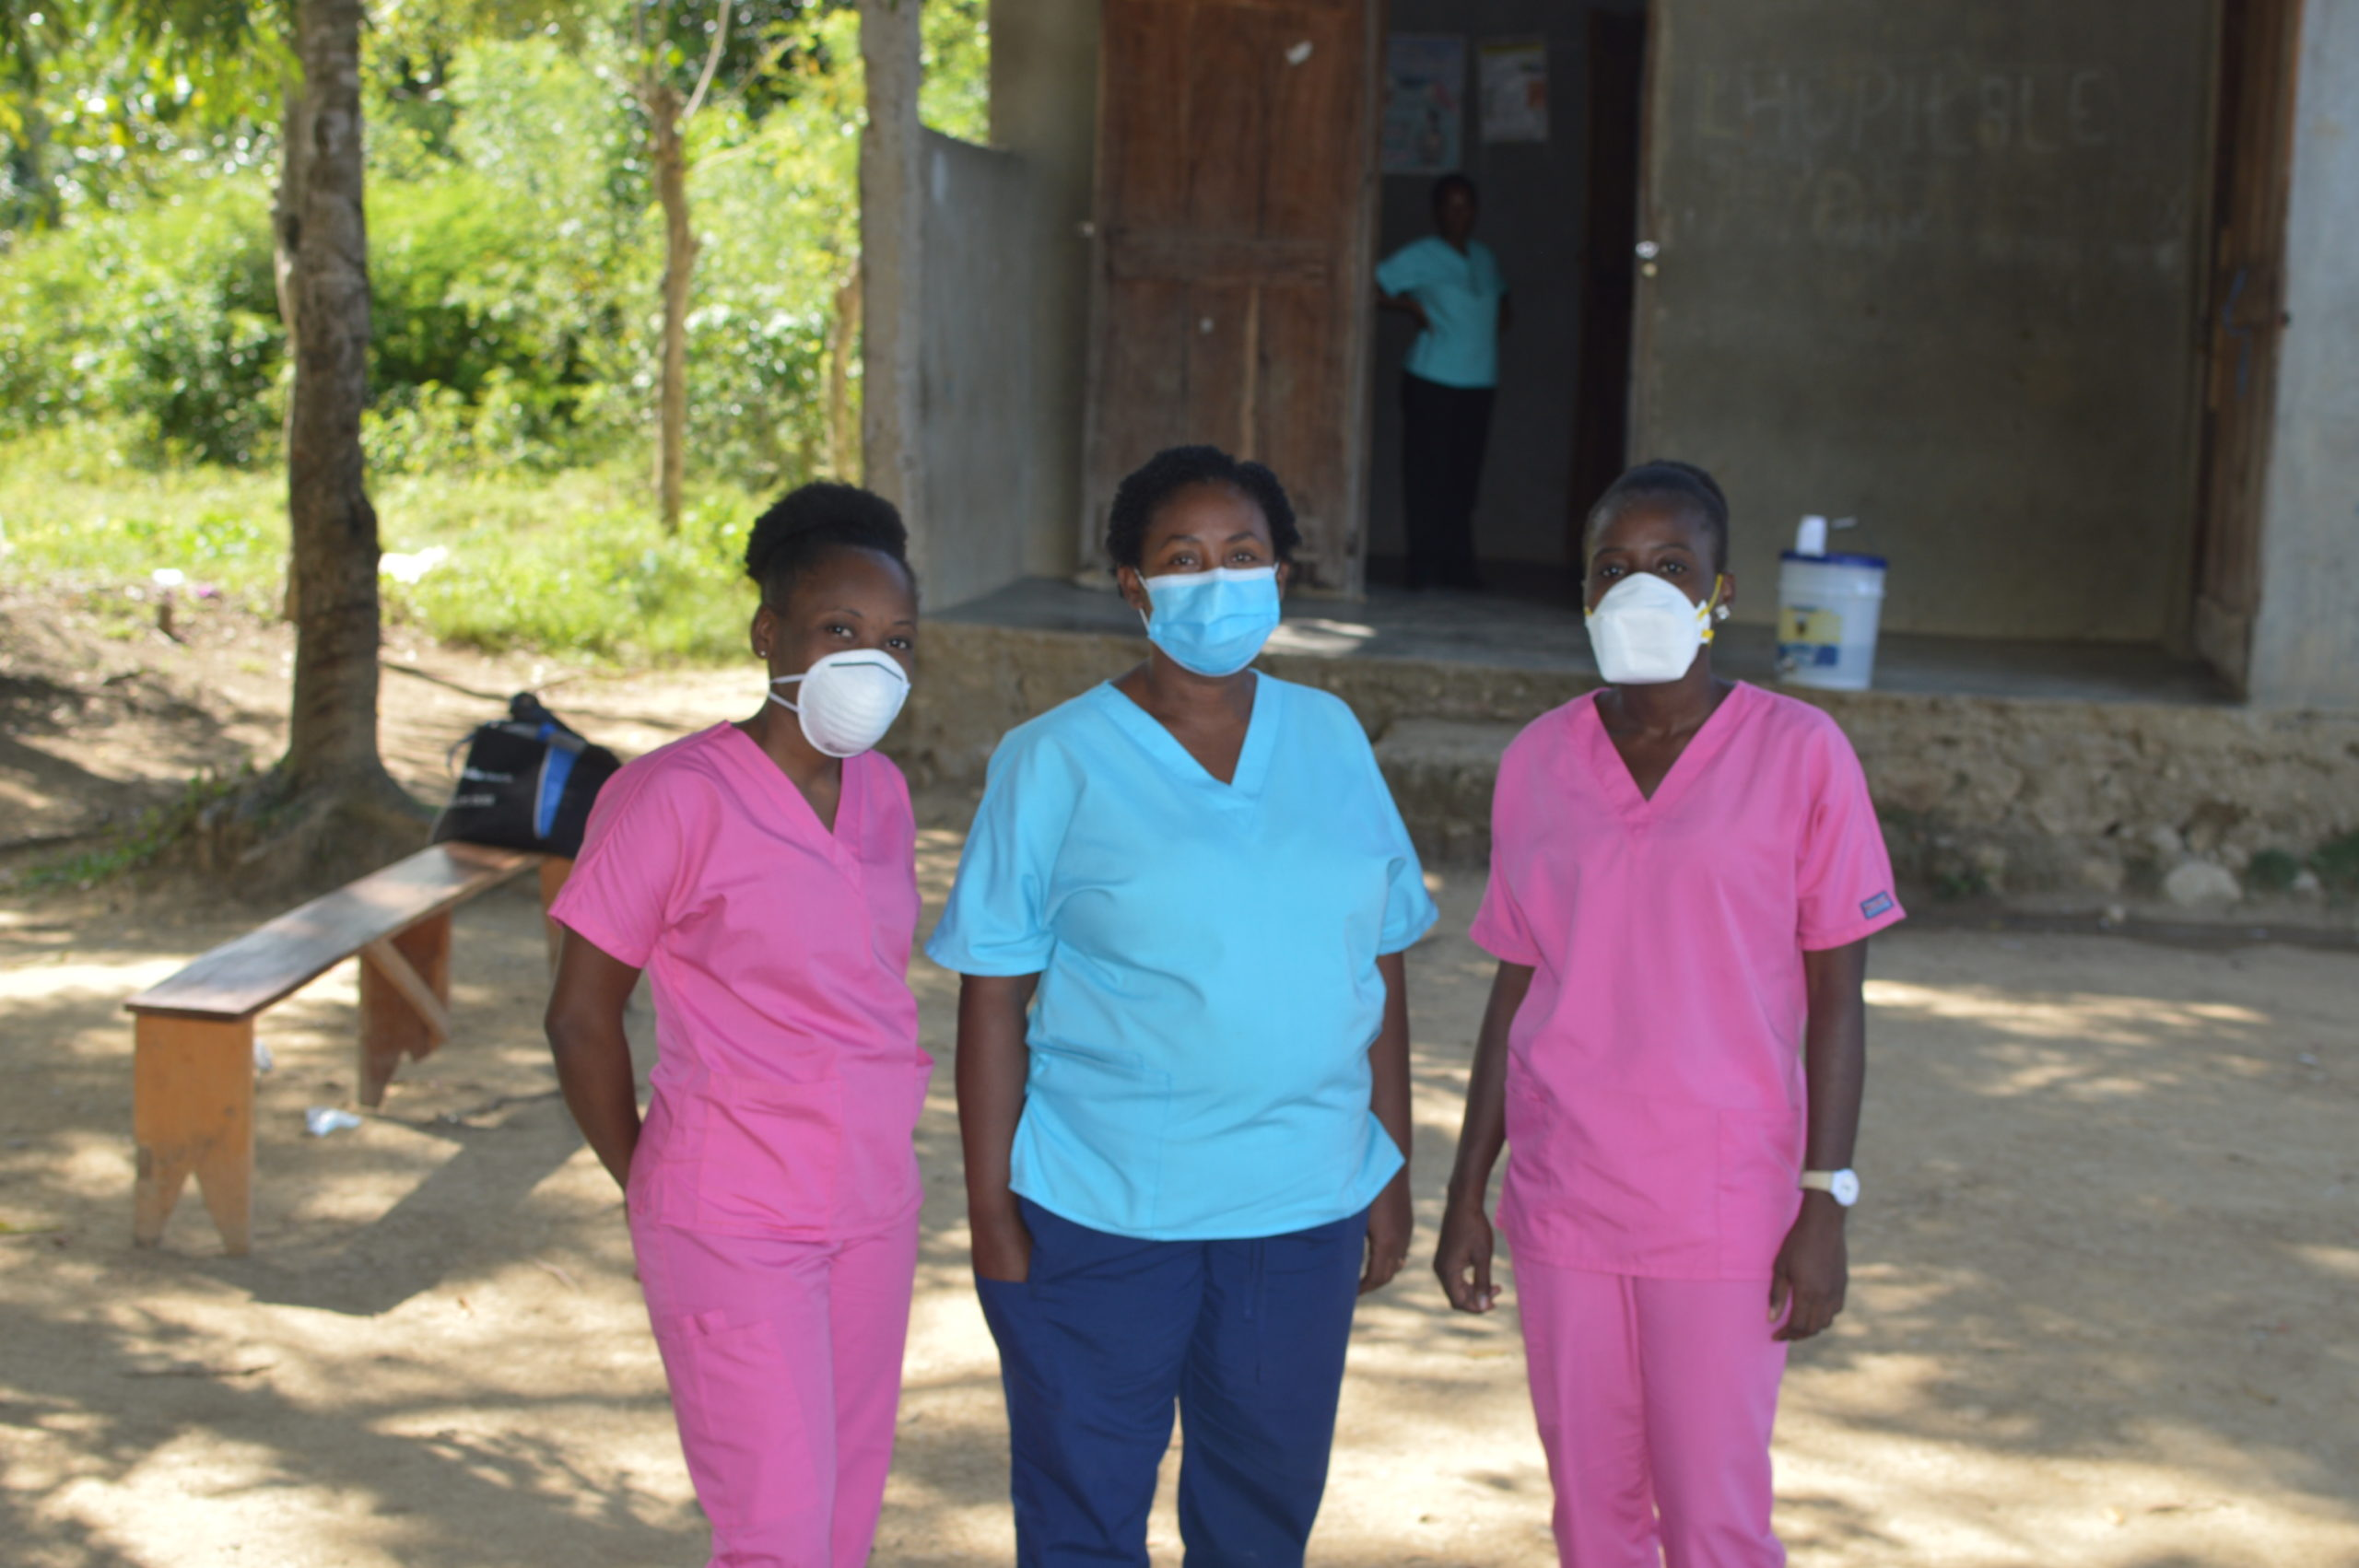 3 Midwives with Covid19 face masks